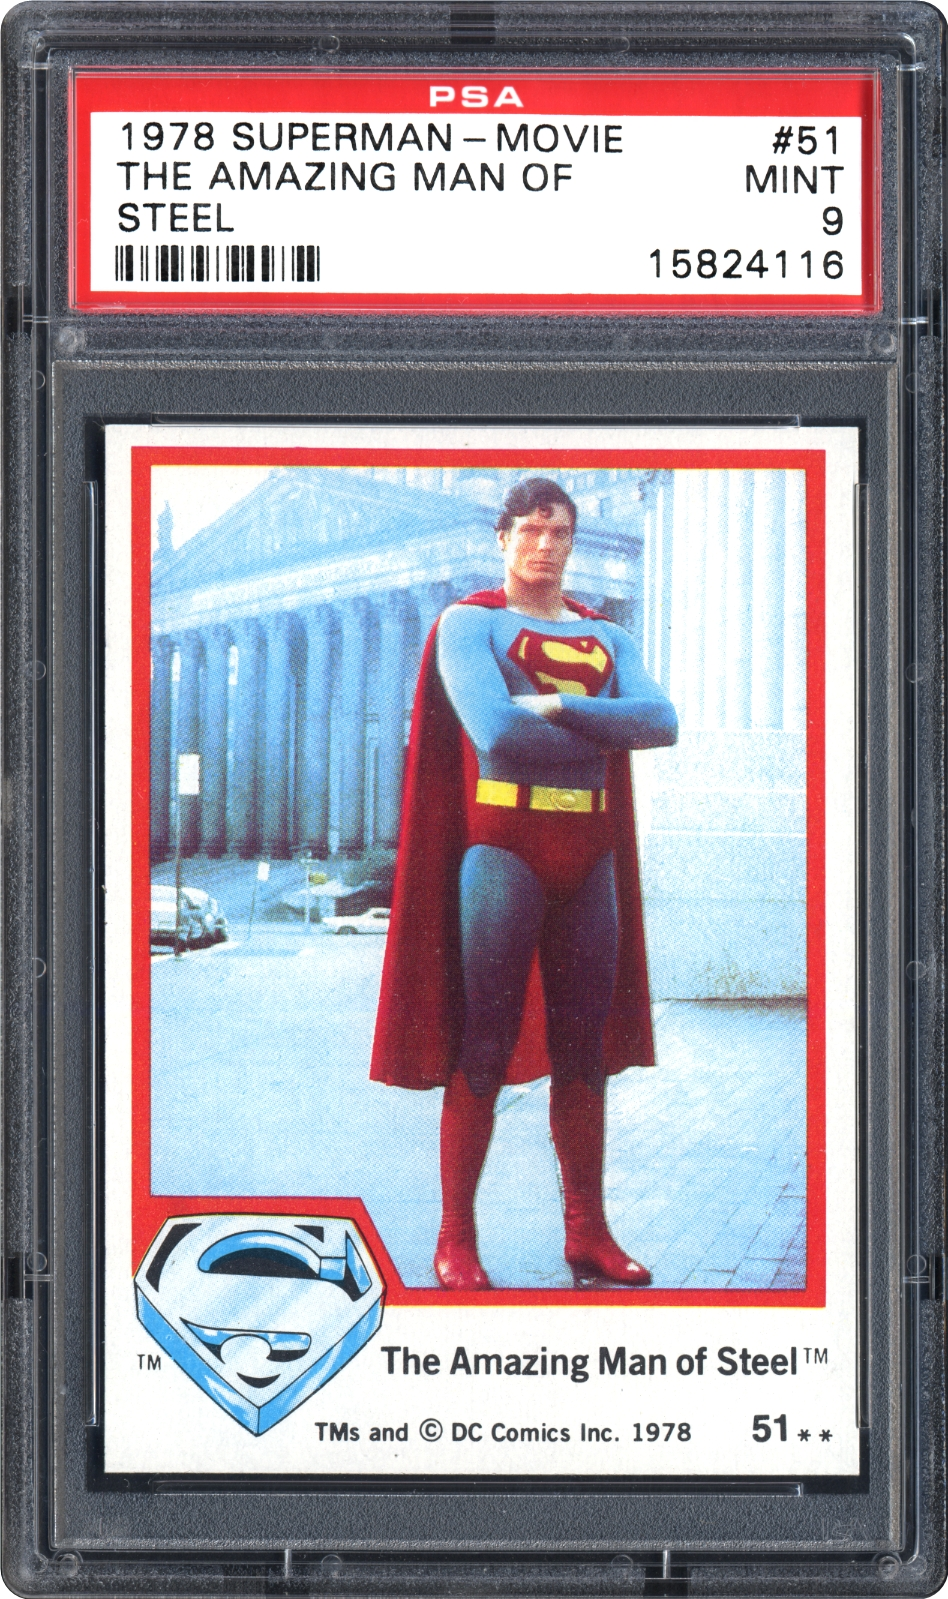 1978 Topps Superman-Movie 51 The Amazing Man Of Steel